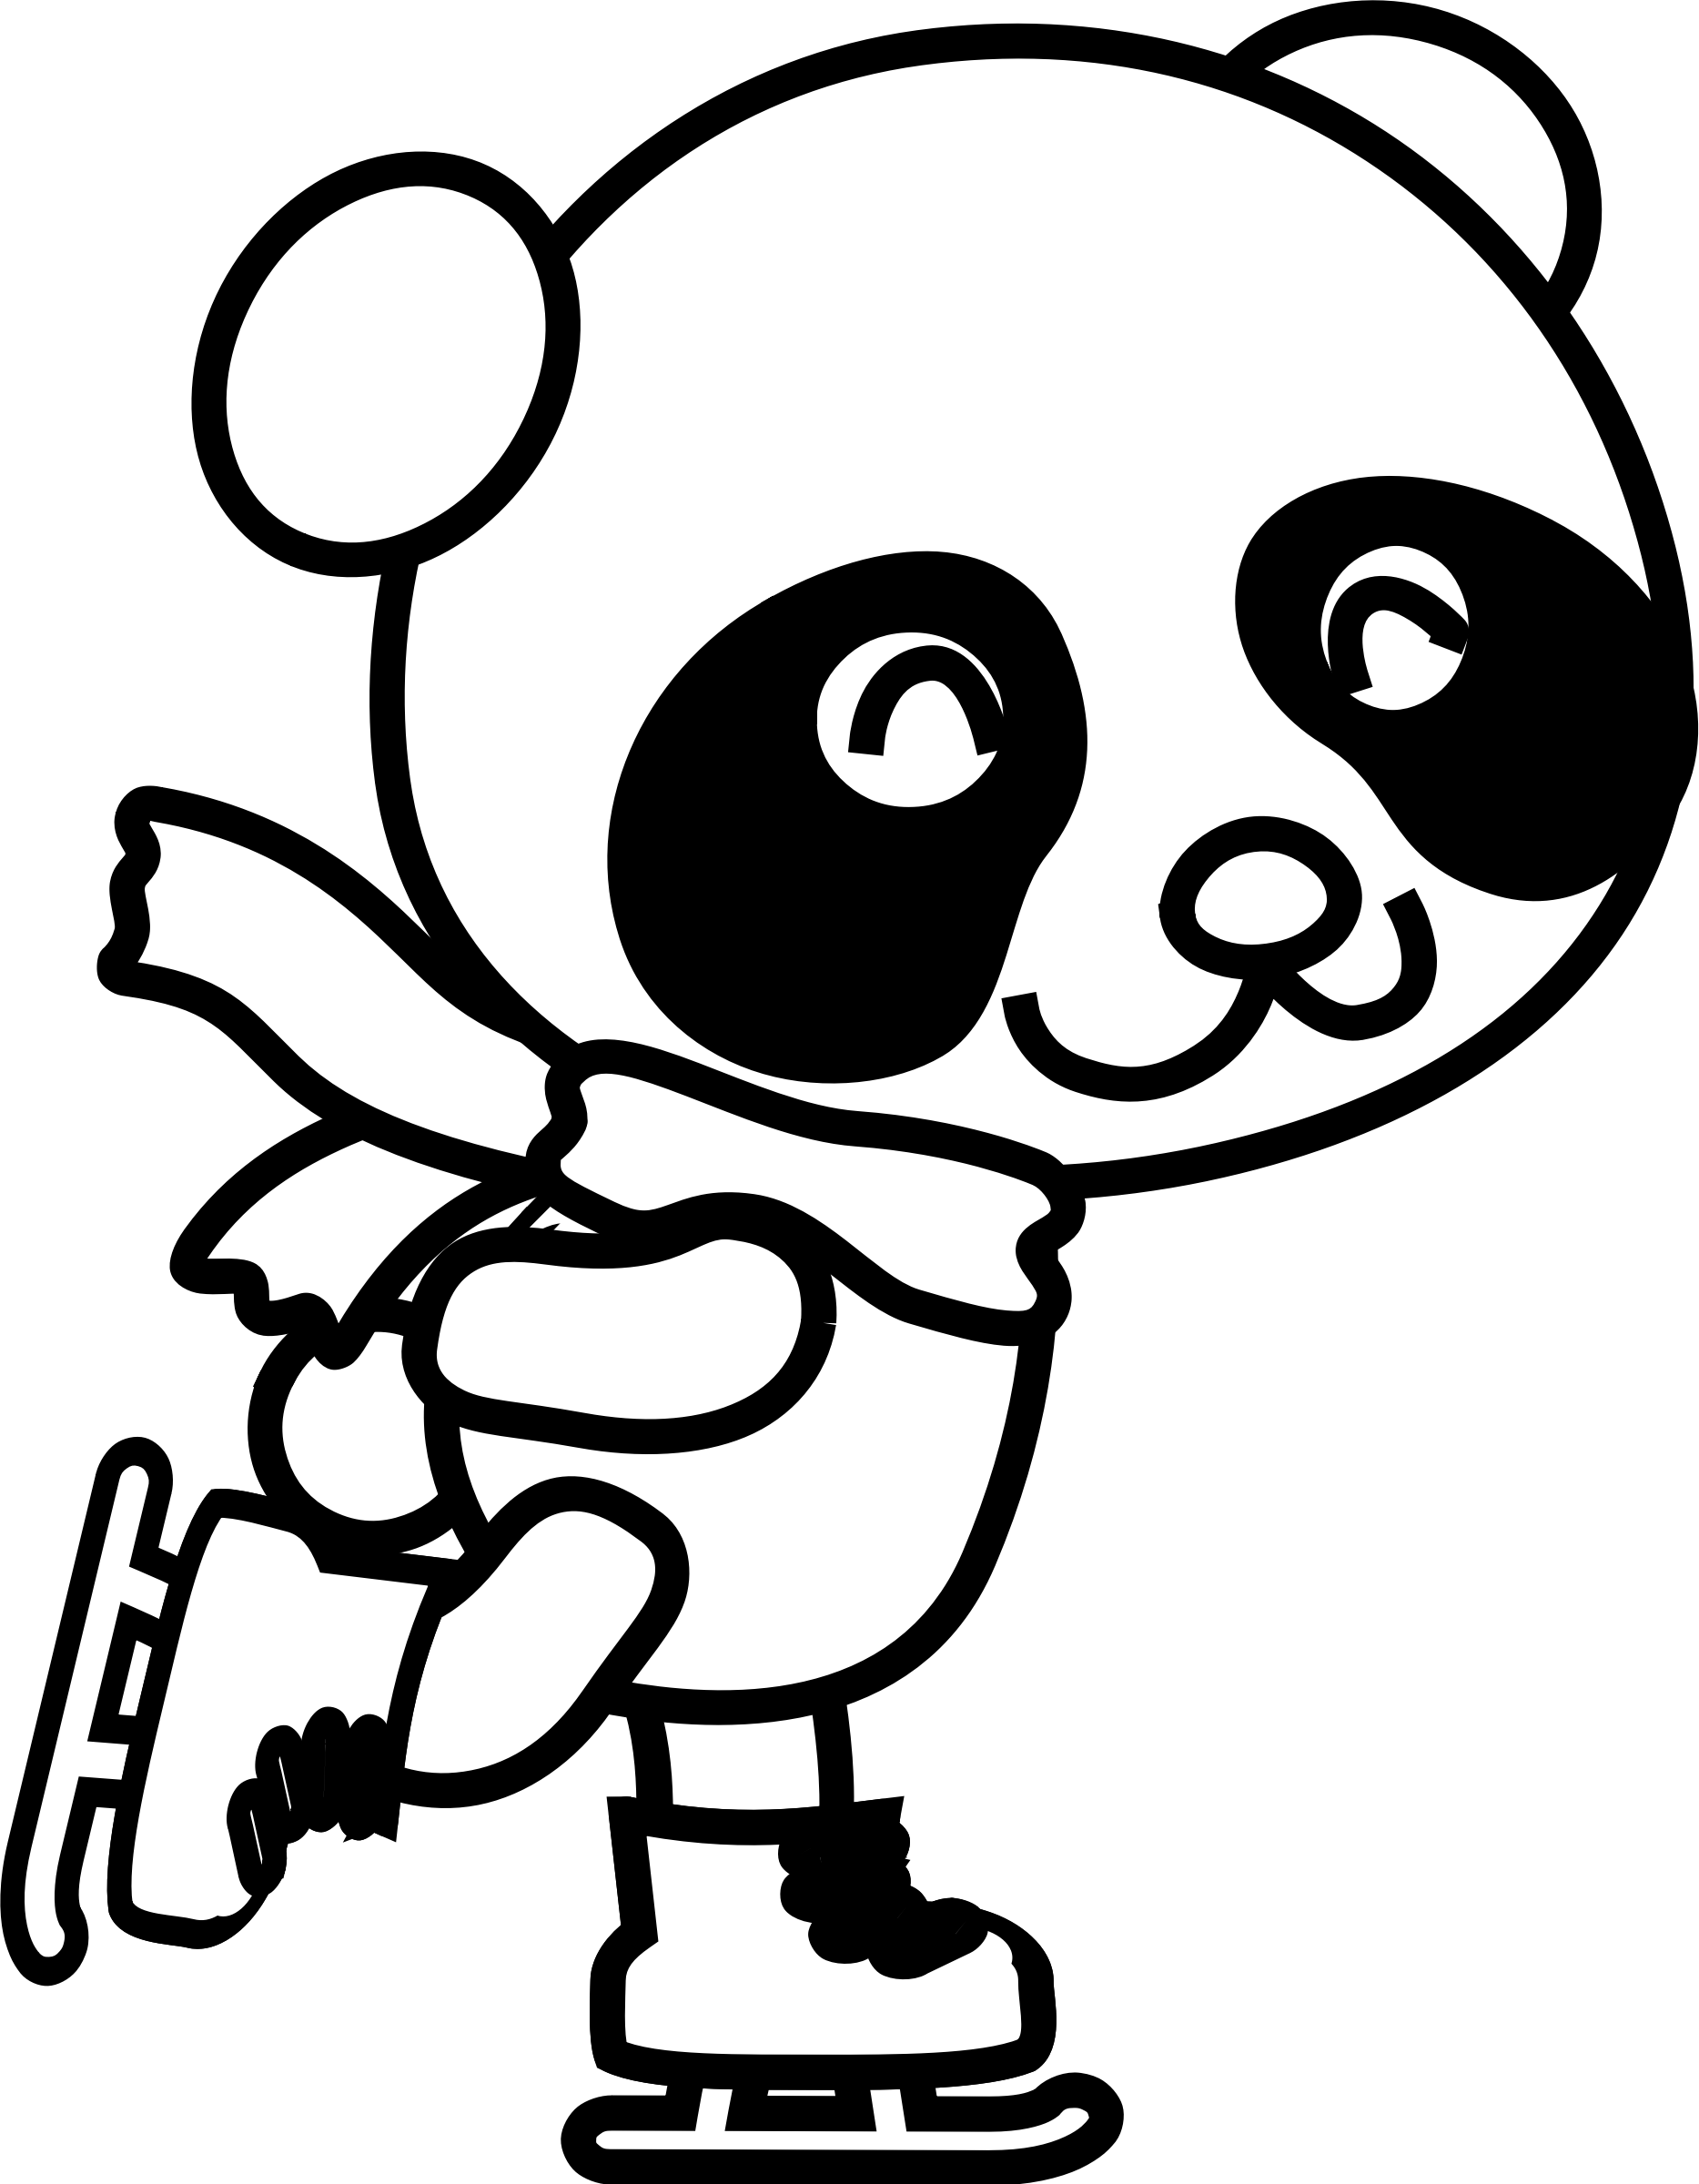 Skating Panda Coloring Page by pianoBrad